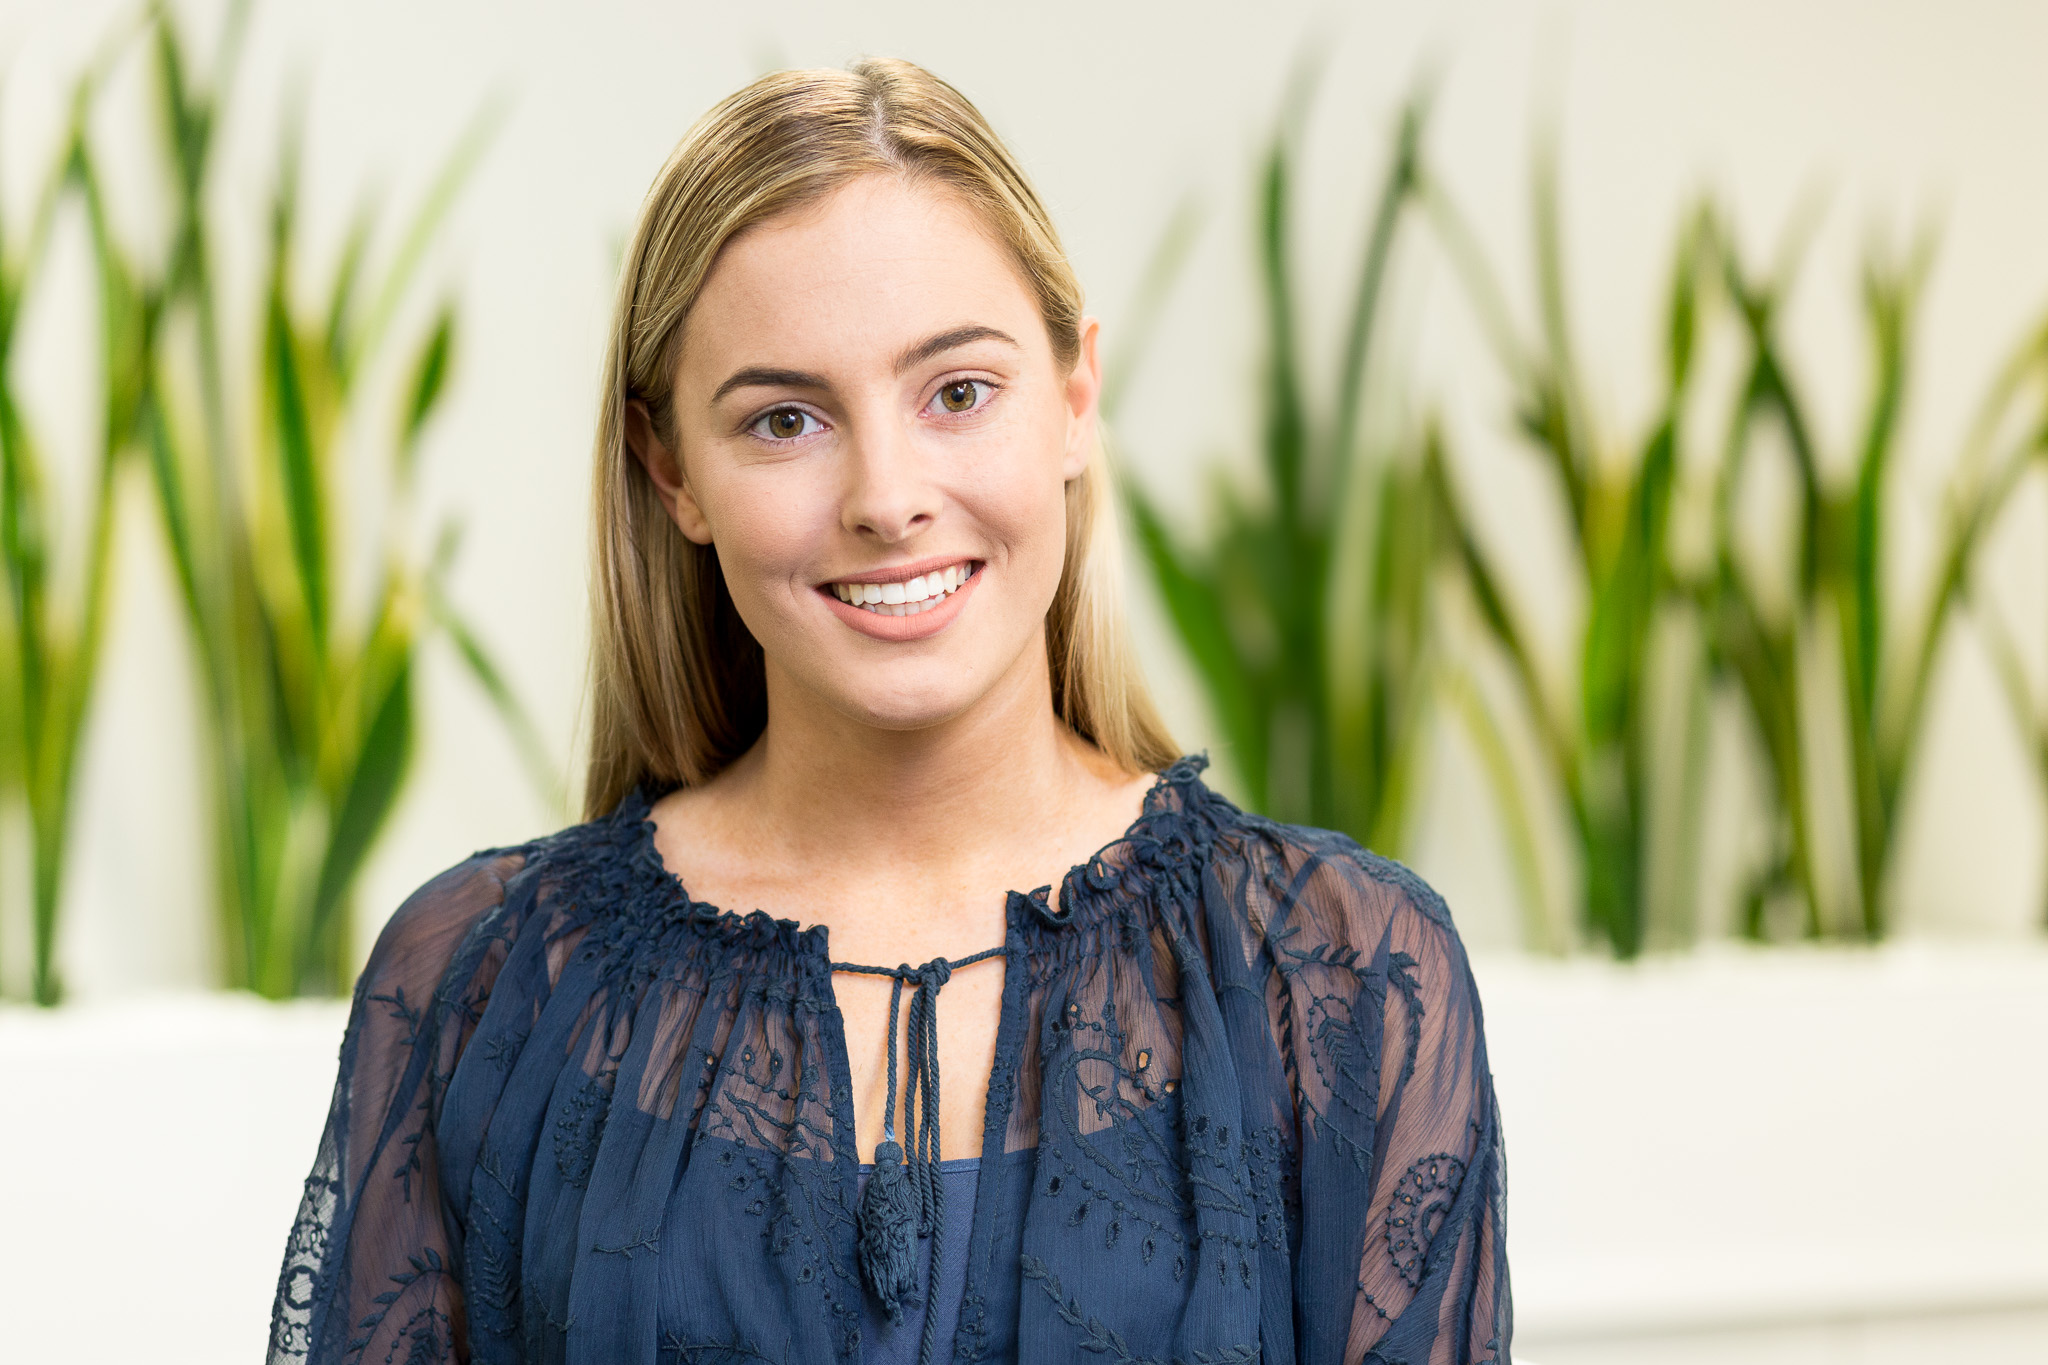 CHARLOTTE BRINKWORTH Accountant   Charlotte joined Letcher Moroney in 2015 as an undergraduate accountant and provides tax and accounting services to a wide range of clients. Charlotte has lived in the Glenelg area all her life and attended Sacred Heart College where she graduated in 2013. Charlotte has completed a Bachelor of Commerce (Accounting) with Advanced Leadership at Flinders University and has since commenced the Chartered Accountant program in 2017.